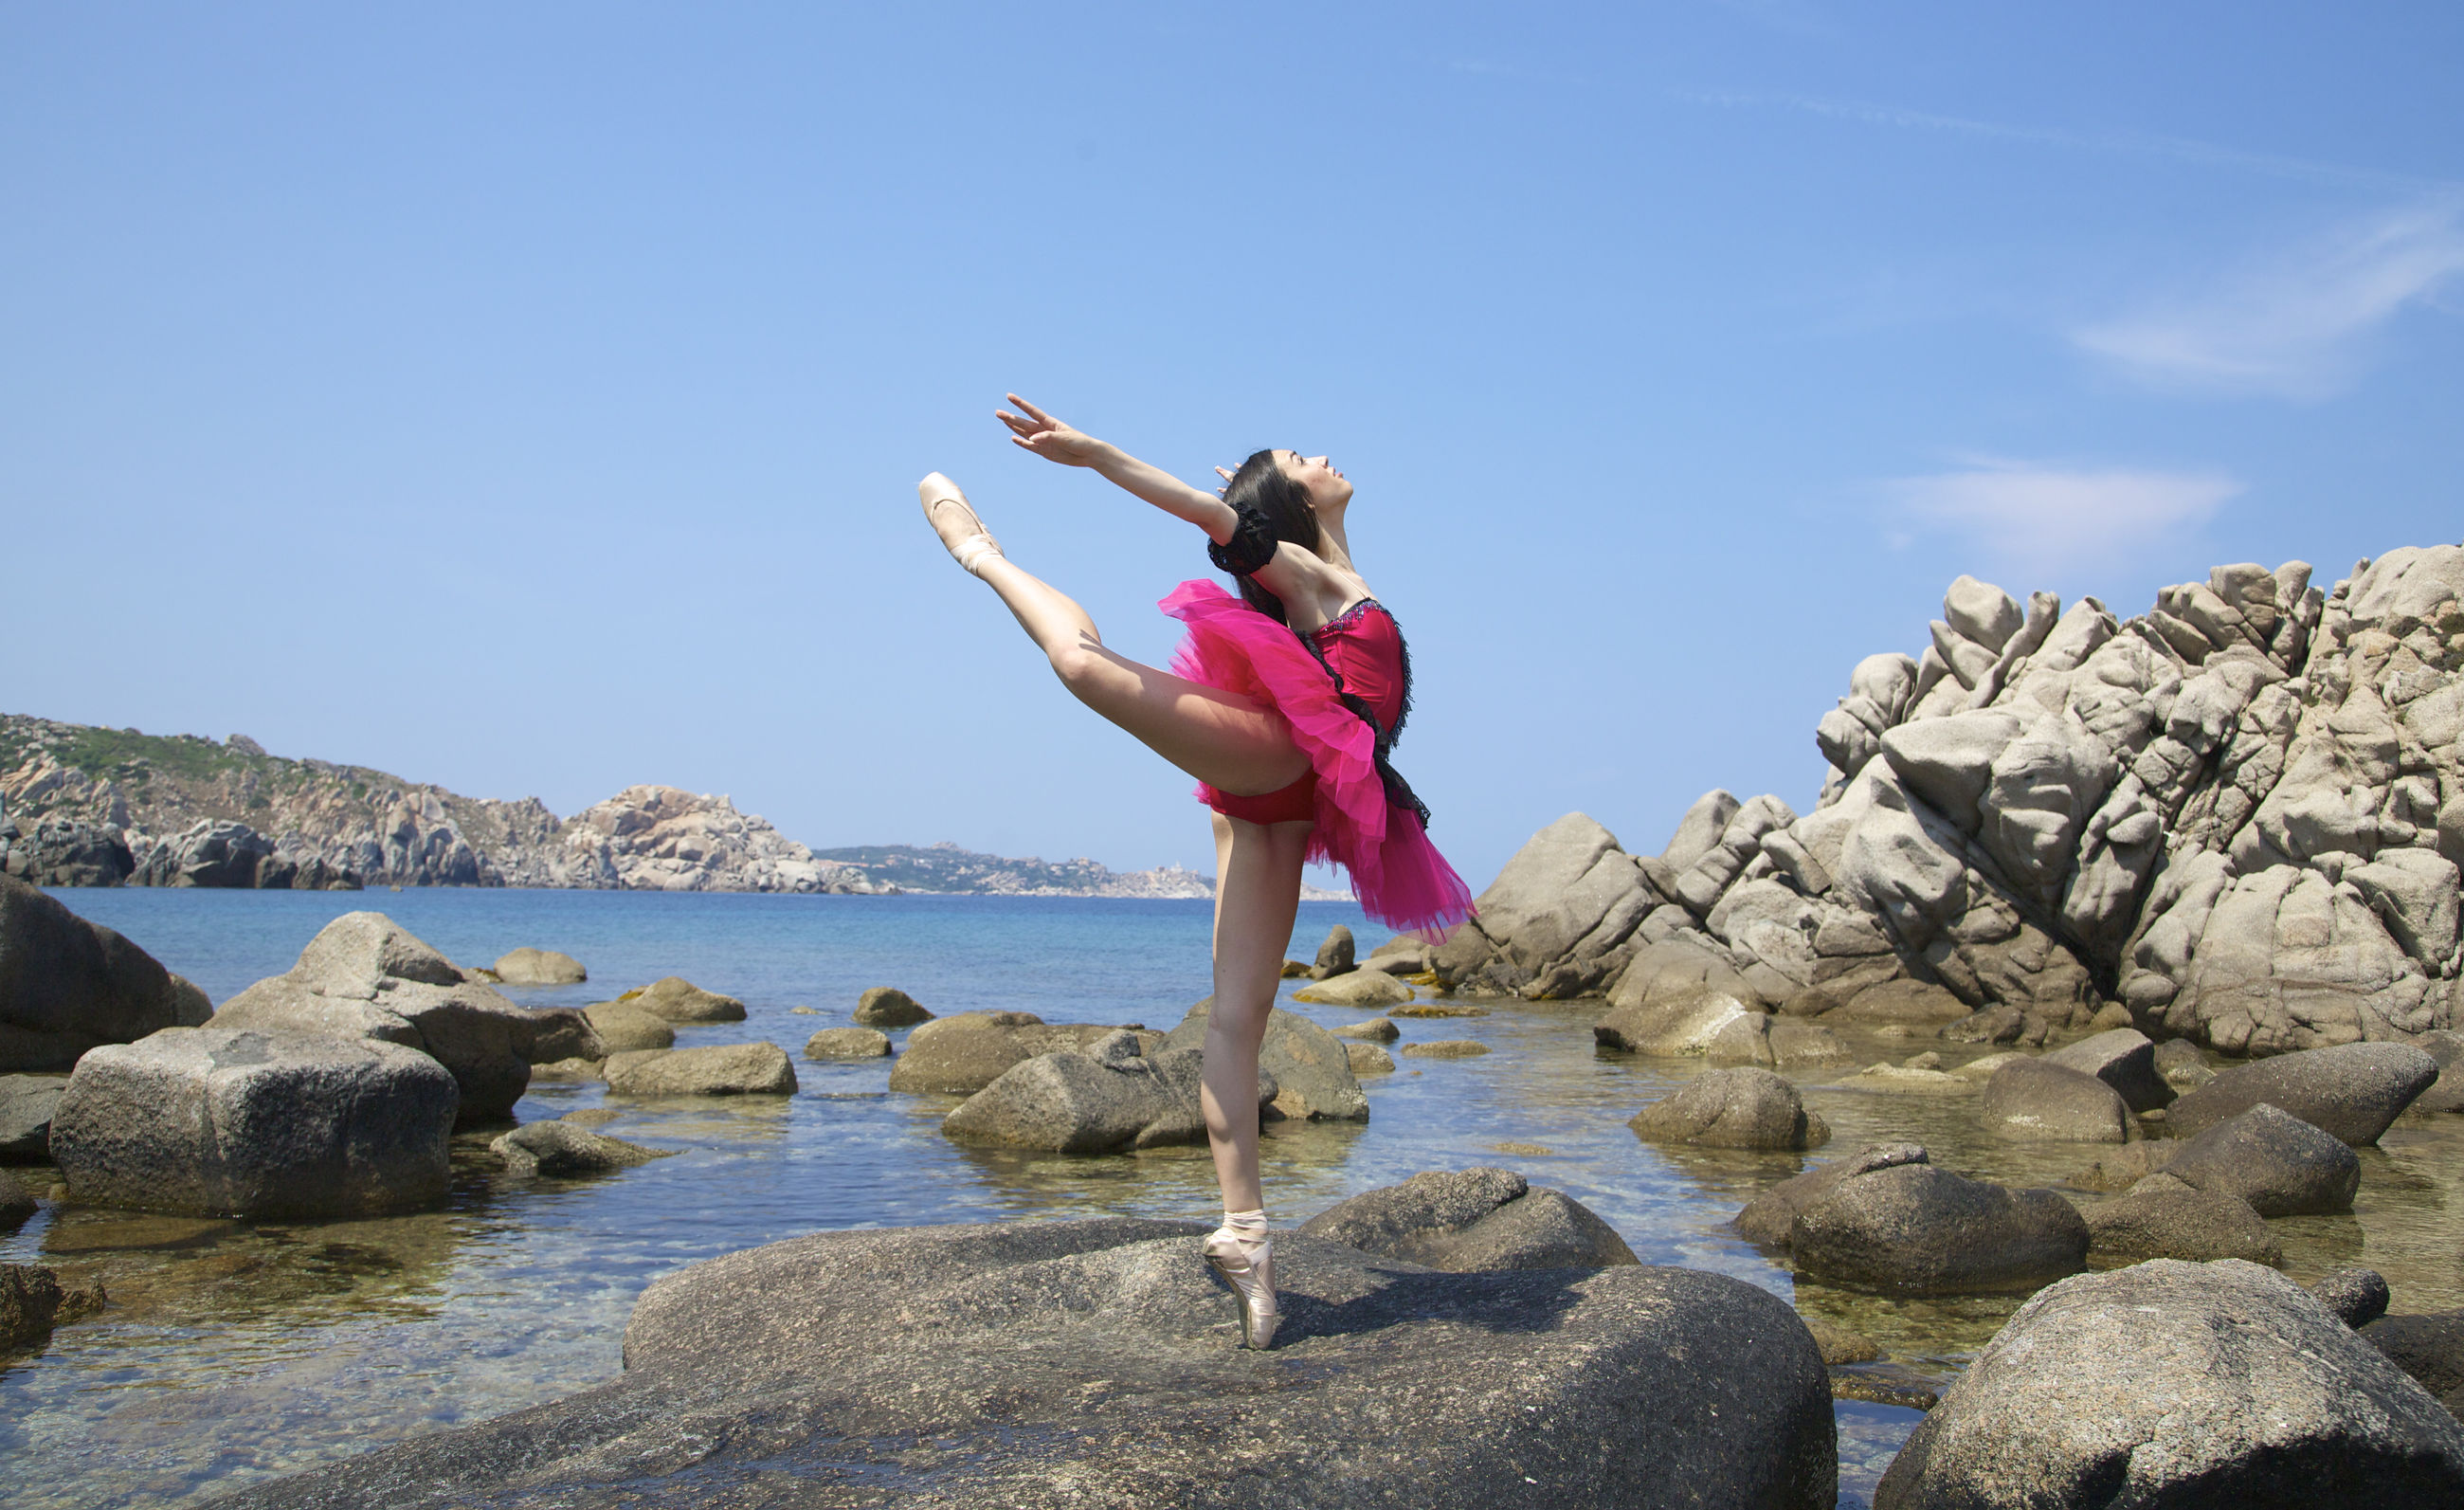 full length, lifestyles, leisure activity, water, casual clothing, person, arms outstretched, jumping, young adult, enjoyment, arms raised, standing, fun, vacations, sea, young women, mid-air, front view